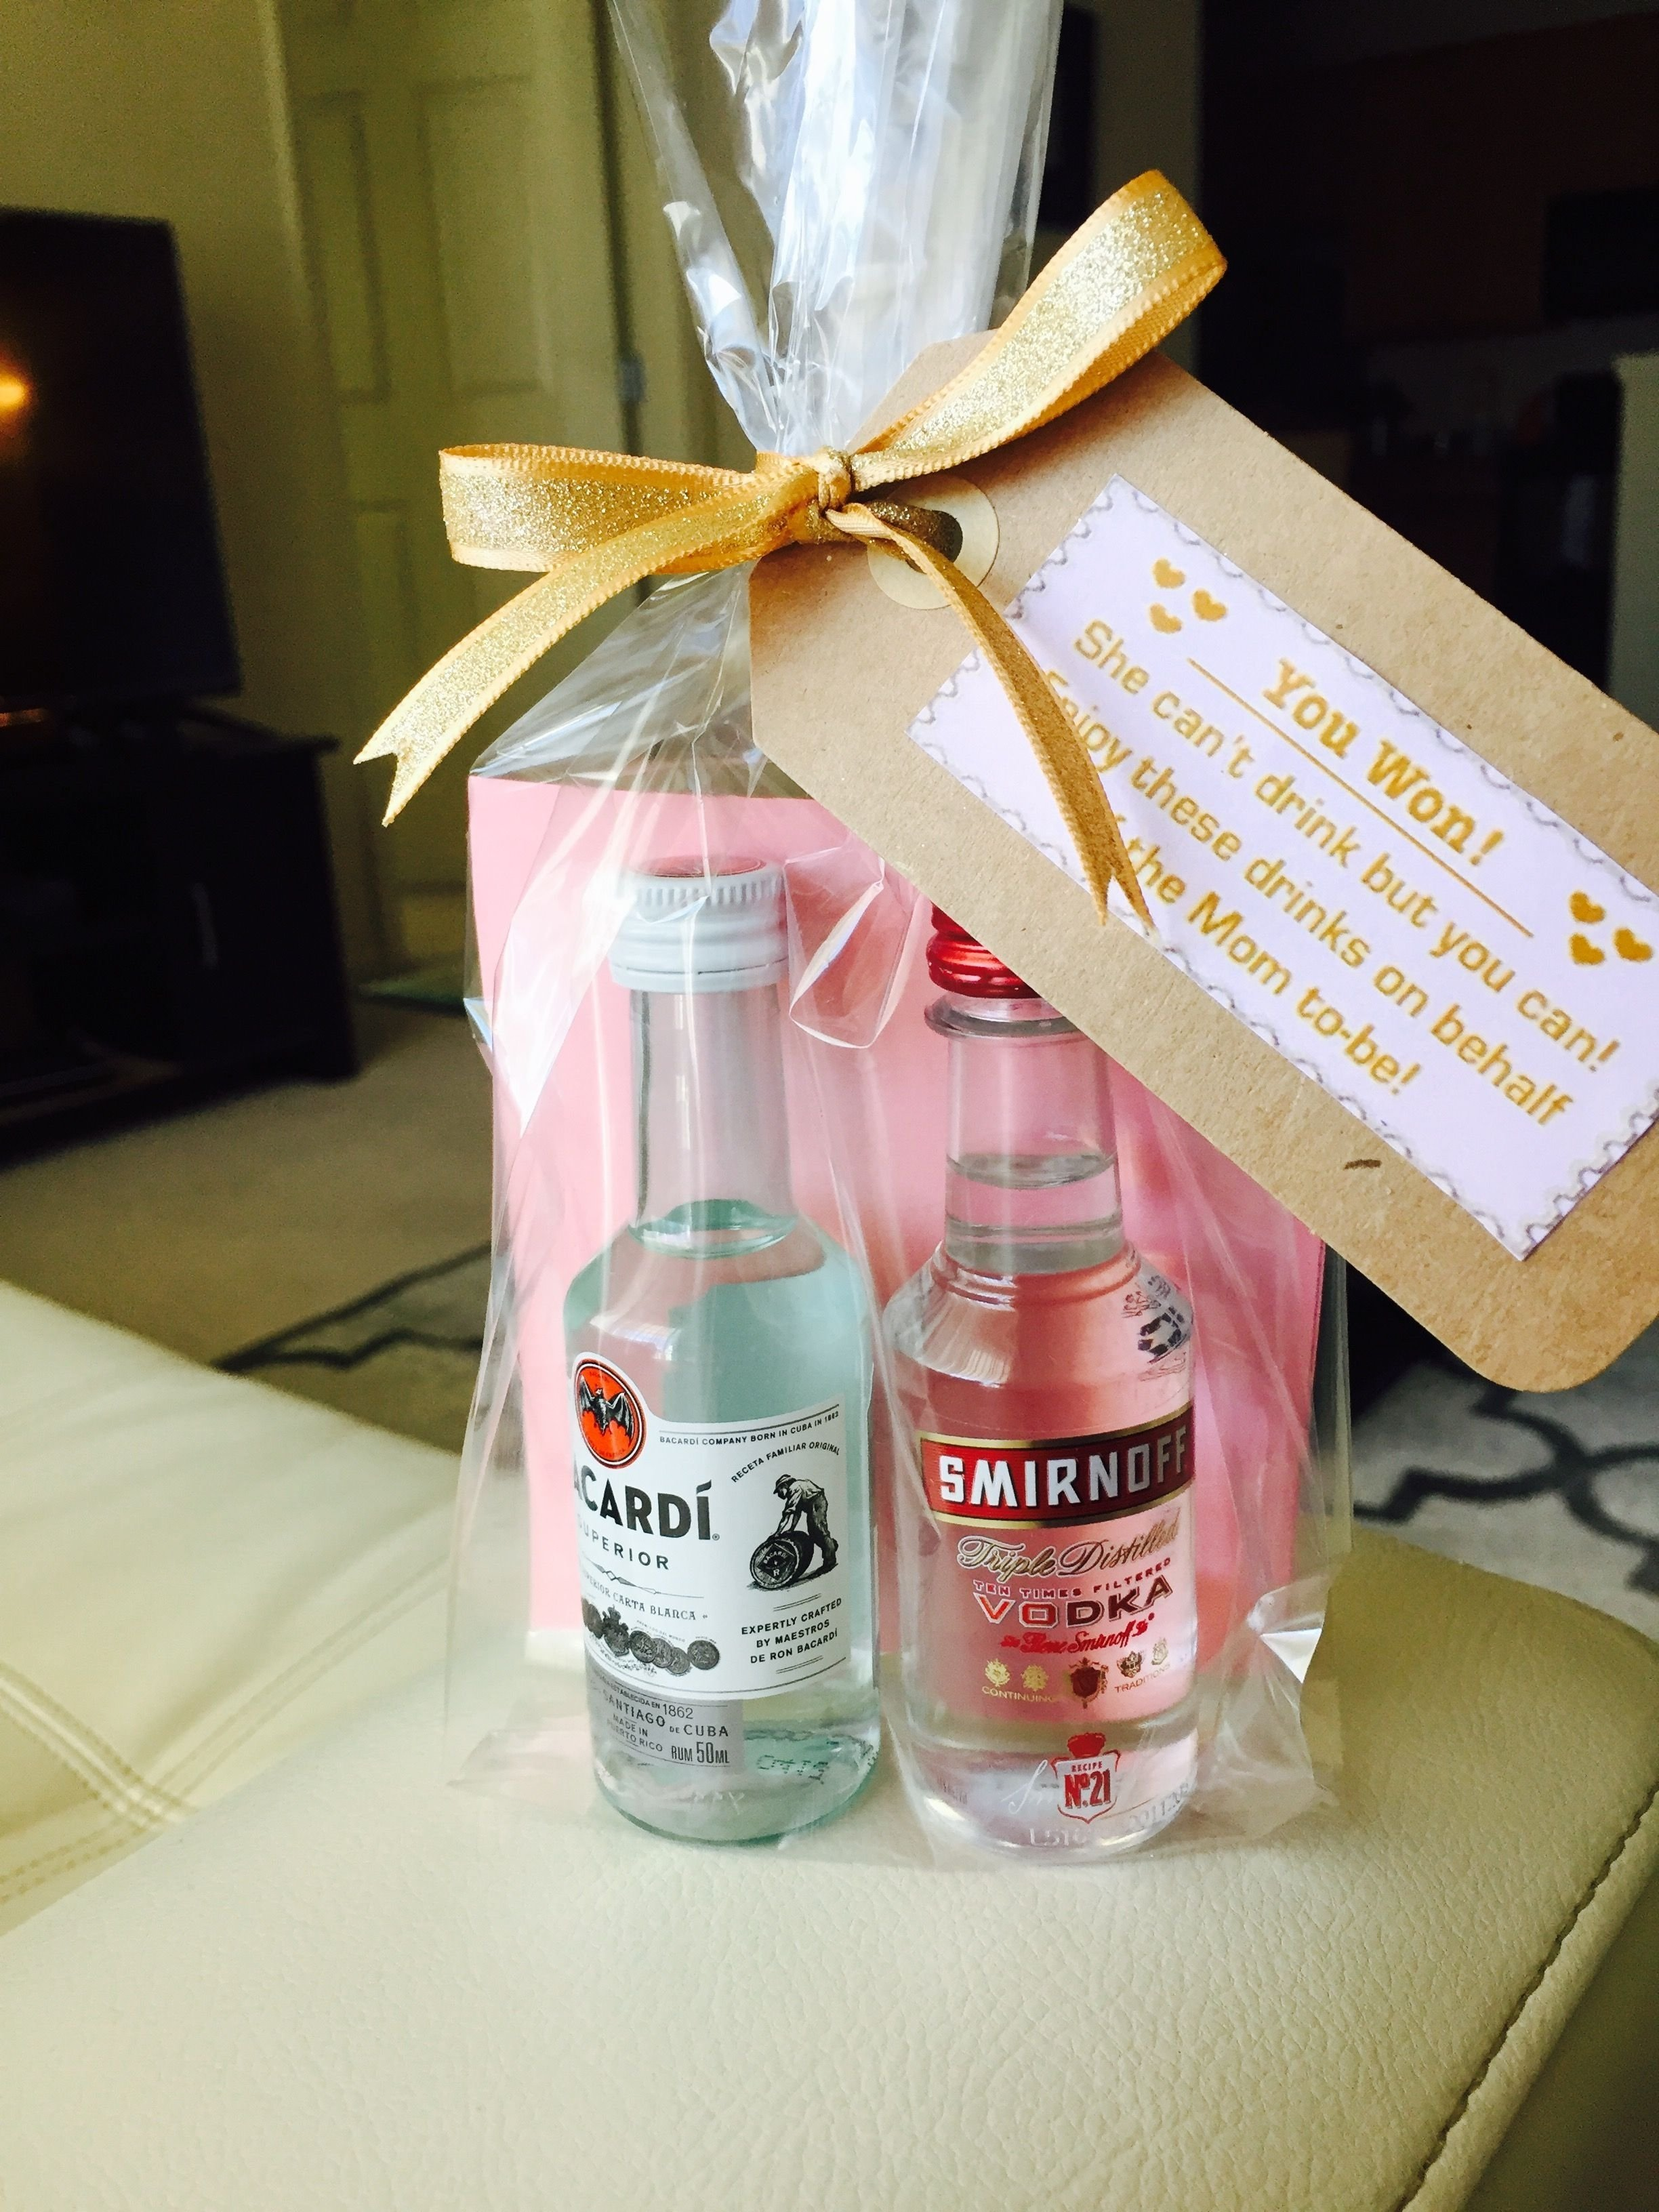 10 Famous Ideas For Baby Shower Favors diy baby shower game favors for men for a co ed shower cute gift 9 2020